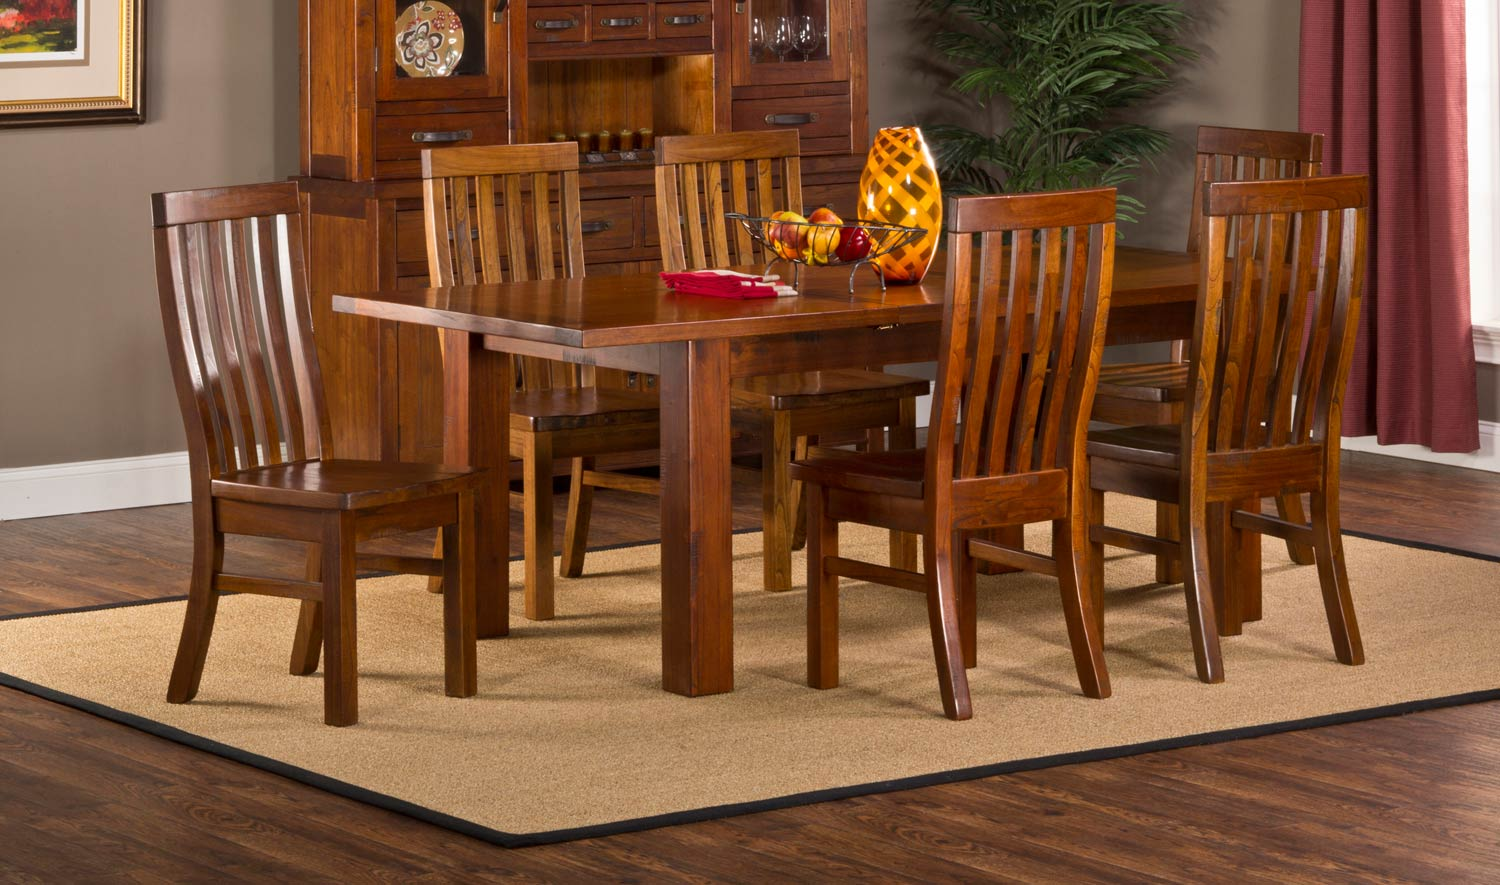 Hillsdale Outback Dining Set - Distressed Chestnut